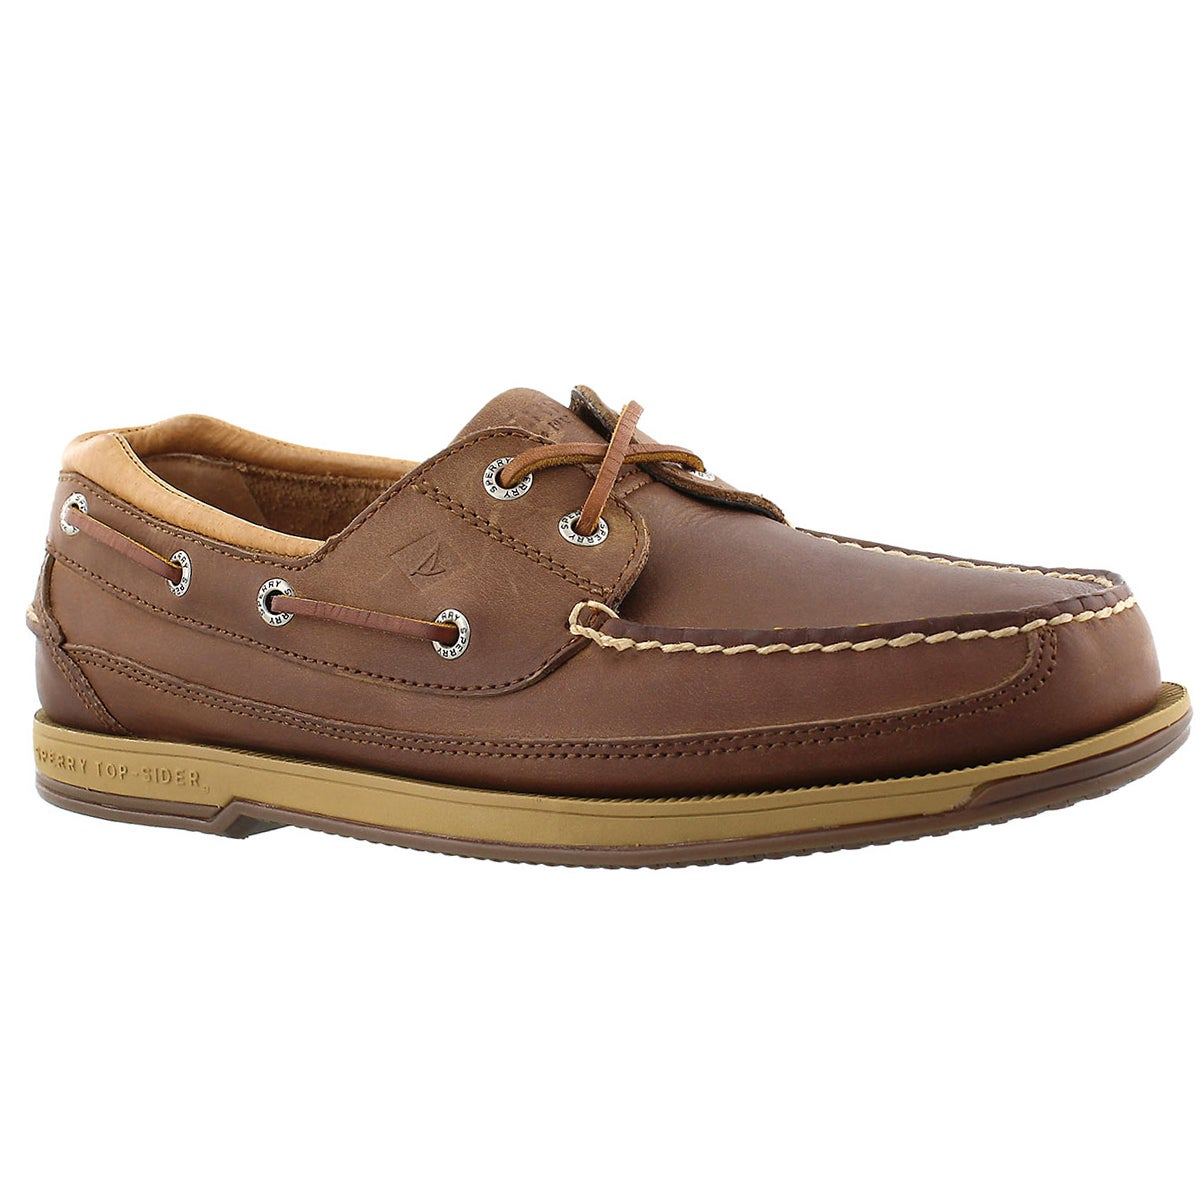 Mns Charter 2-Eye dark tan boat shoe